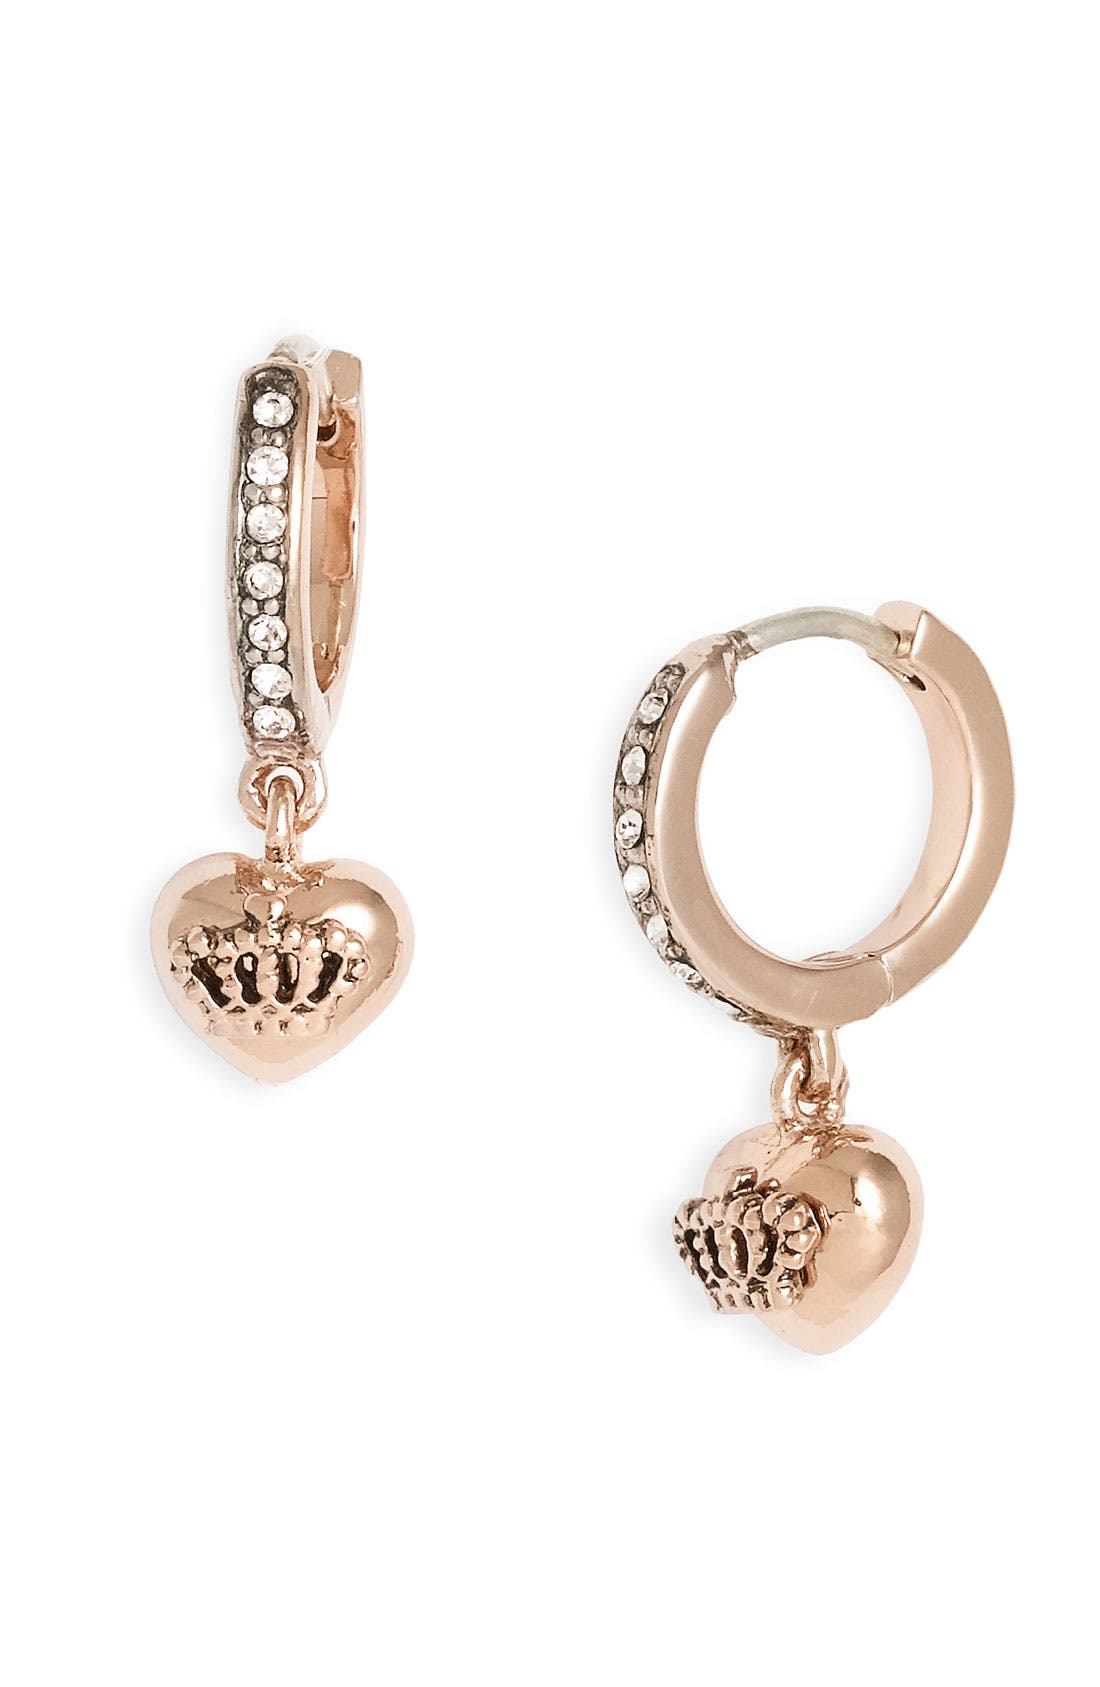 Alternate Image 1 Selected - Juicy Couture 'Crown Icons' Tiny Heart & Hoop Earrings